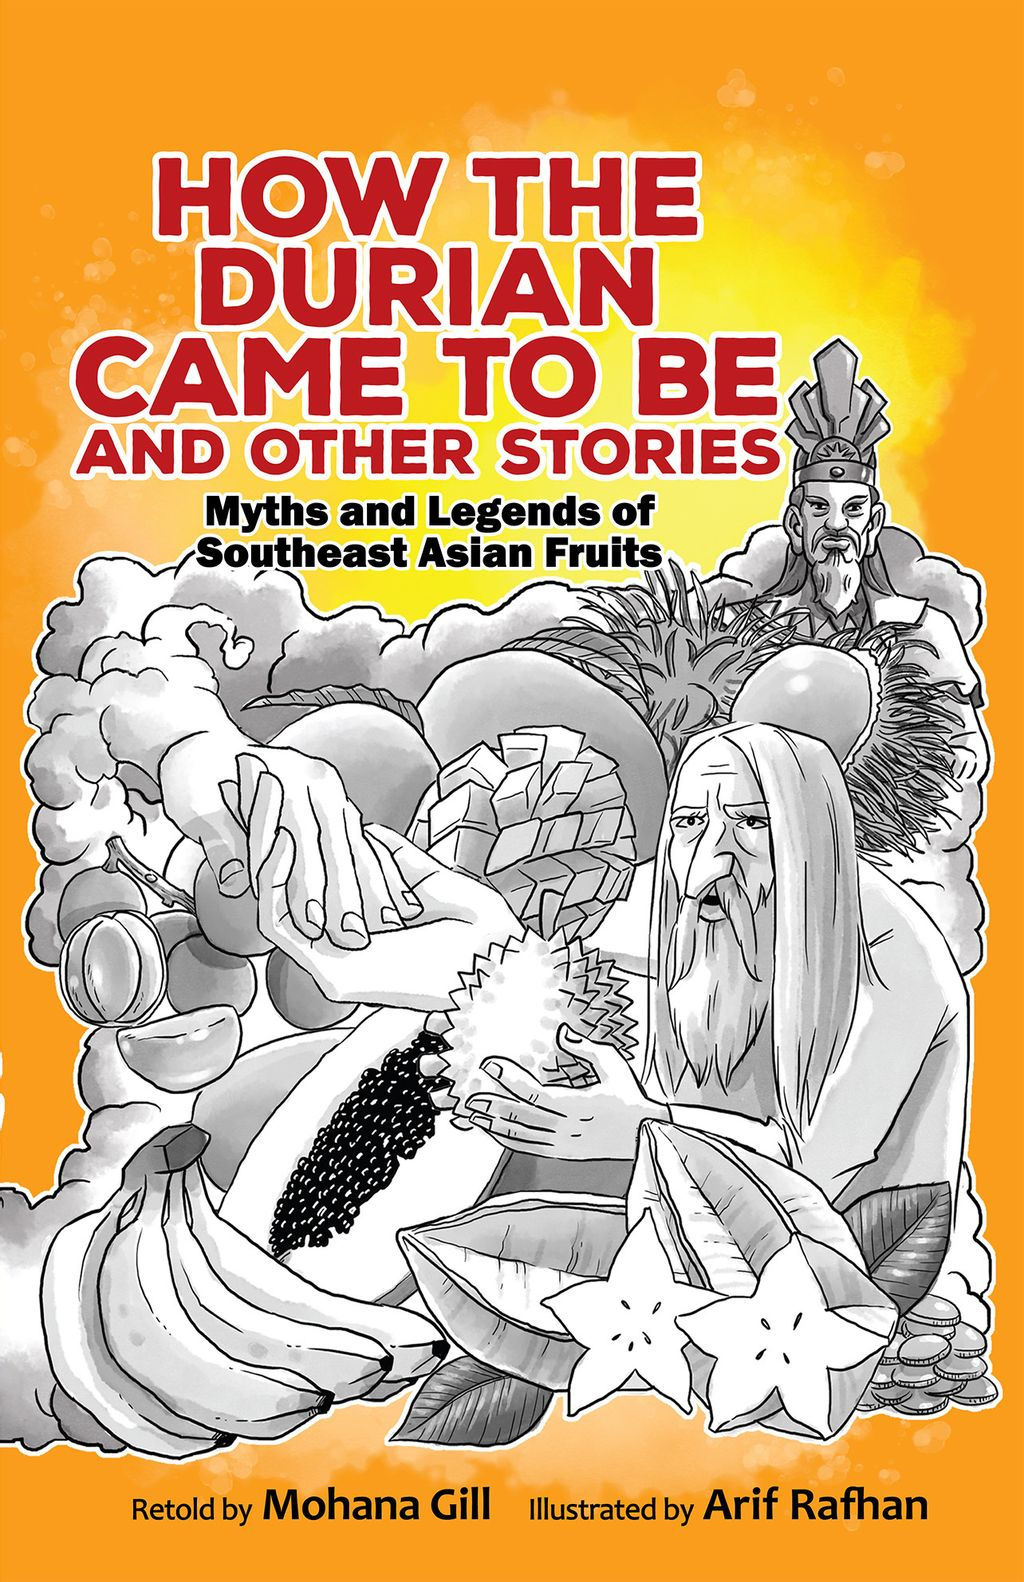 How the Durian Came to be and Other Stories.jpg